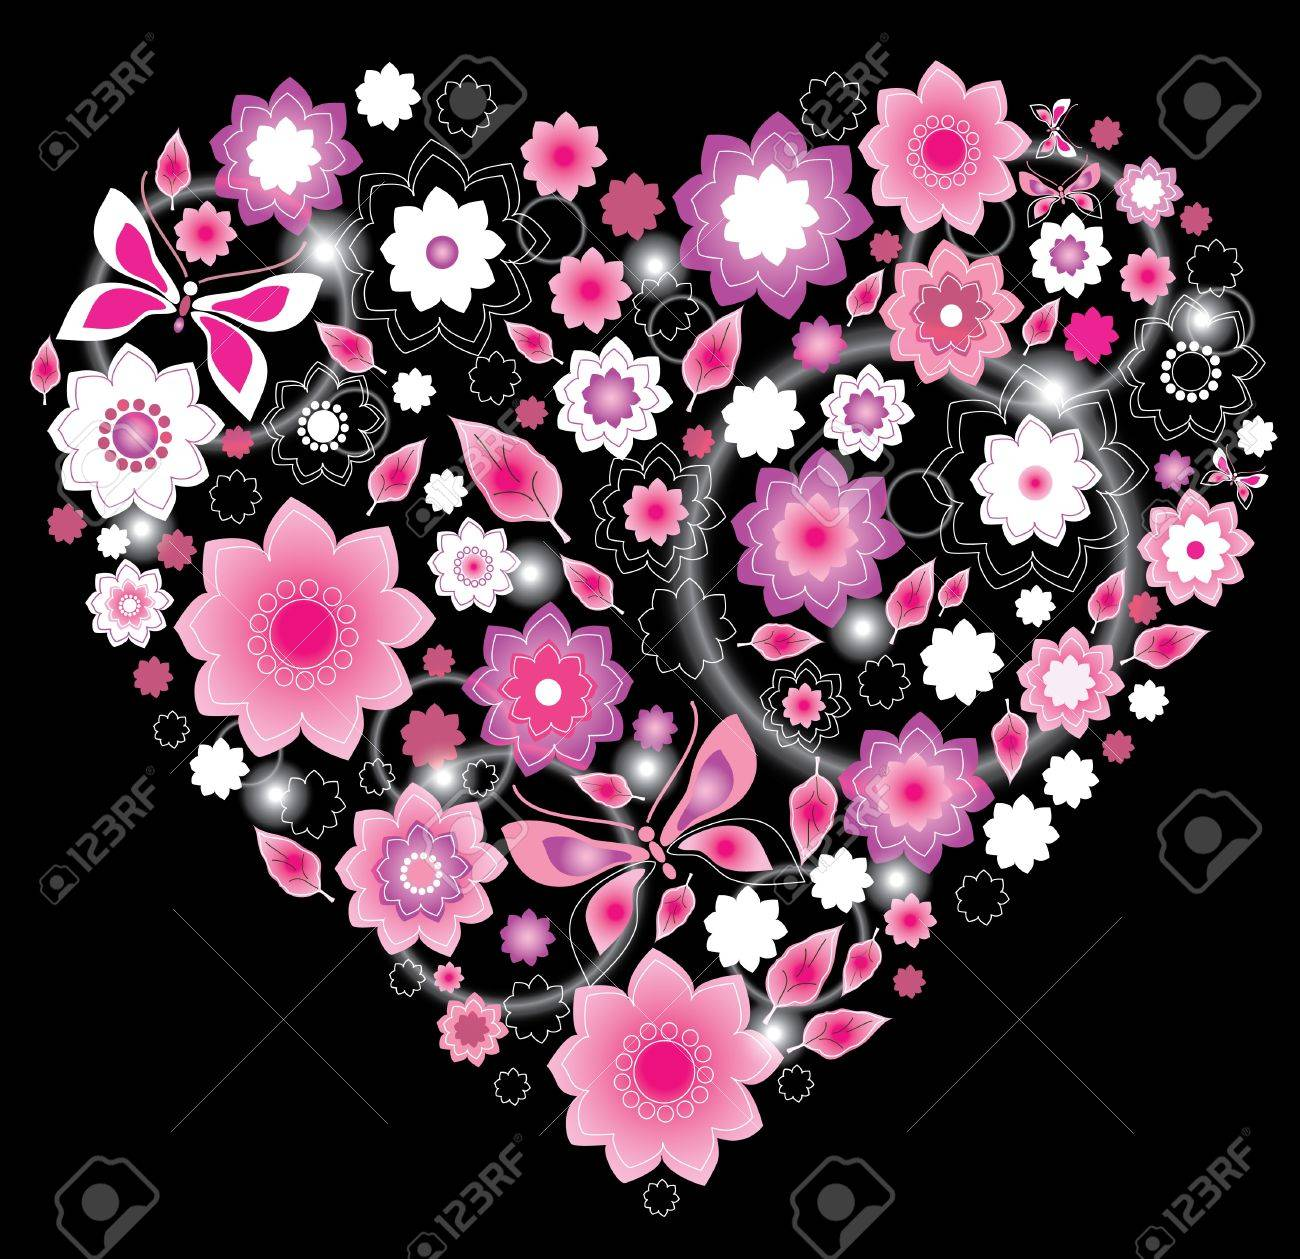 Floral bright pink Heart, Valentine background Stock Vector - 11830981